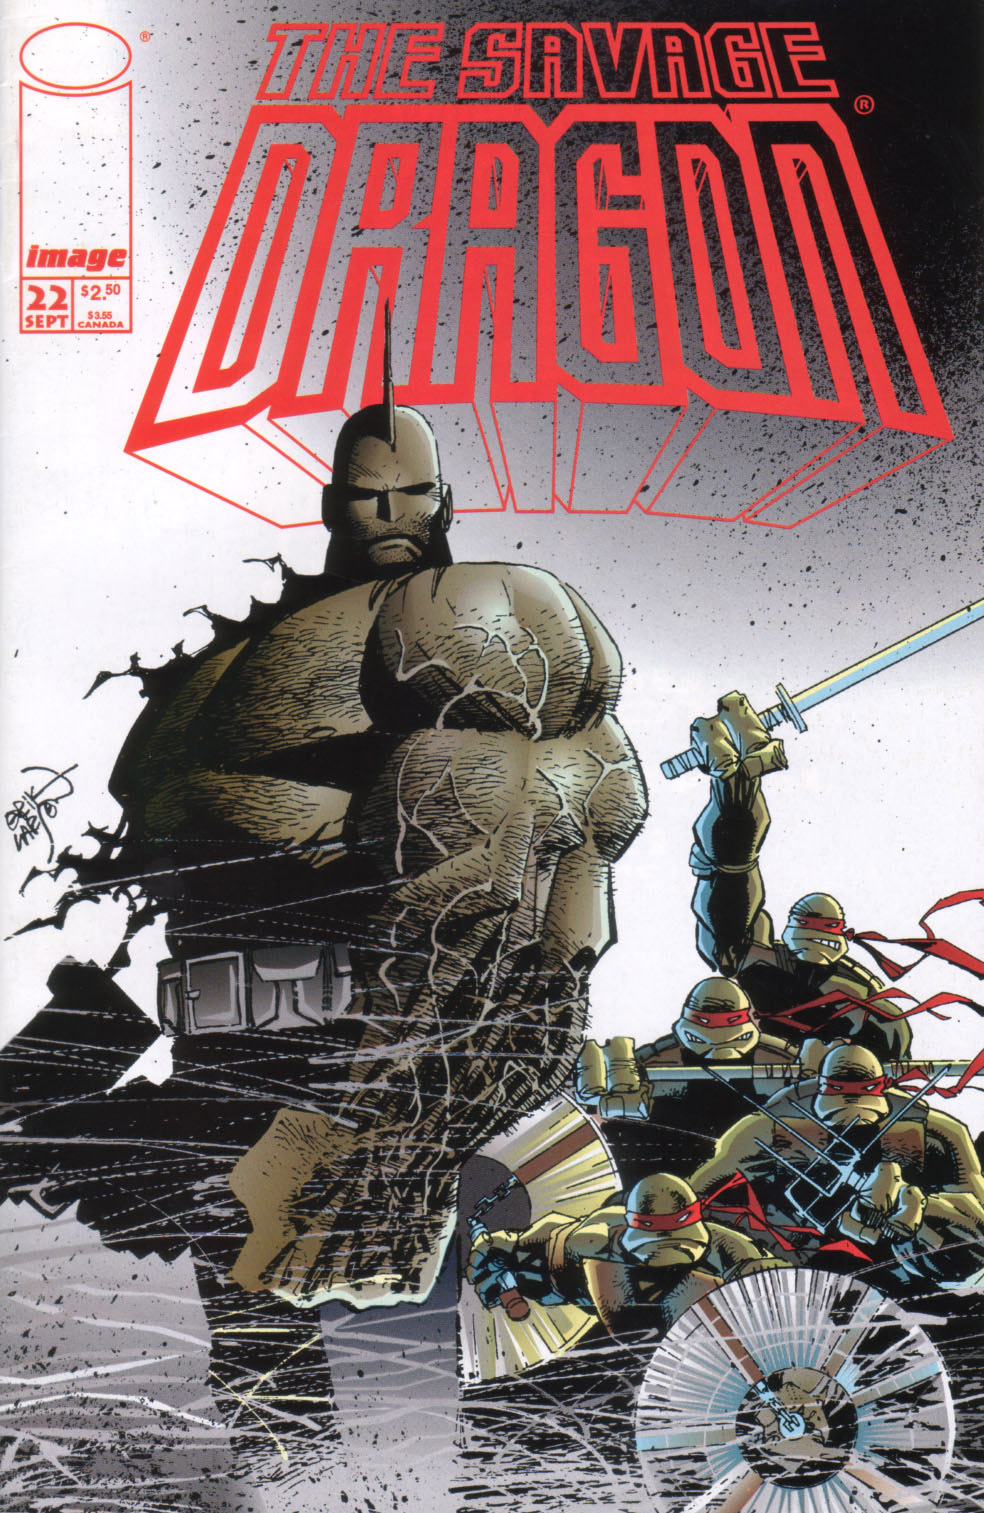 Cover Savage Dragon Vol.2 #22